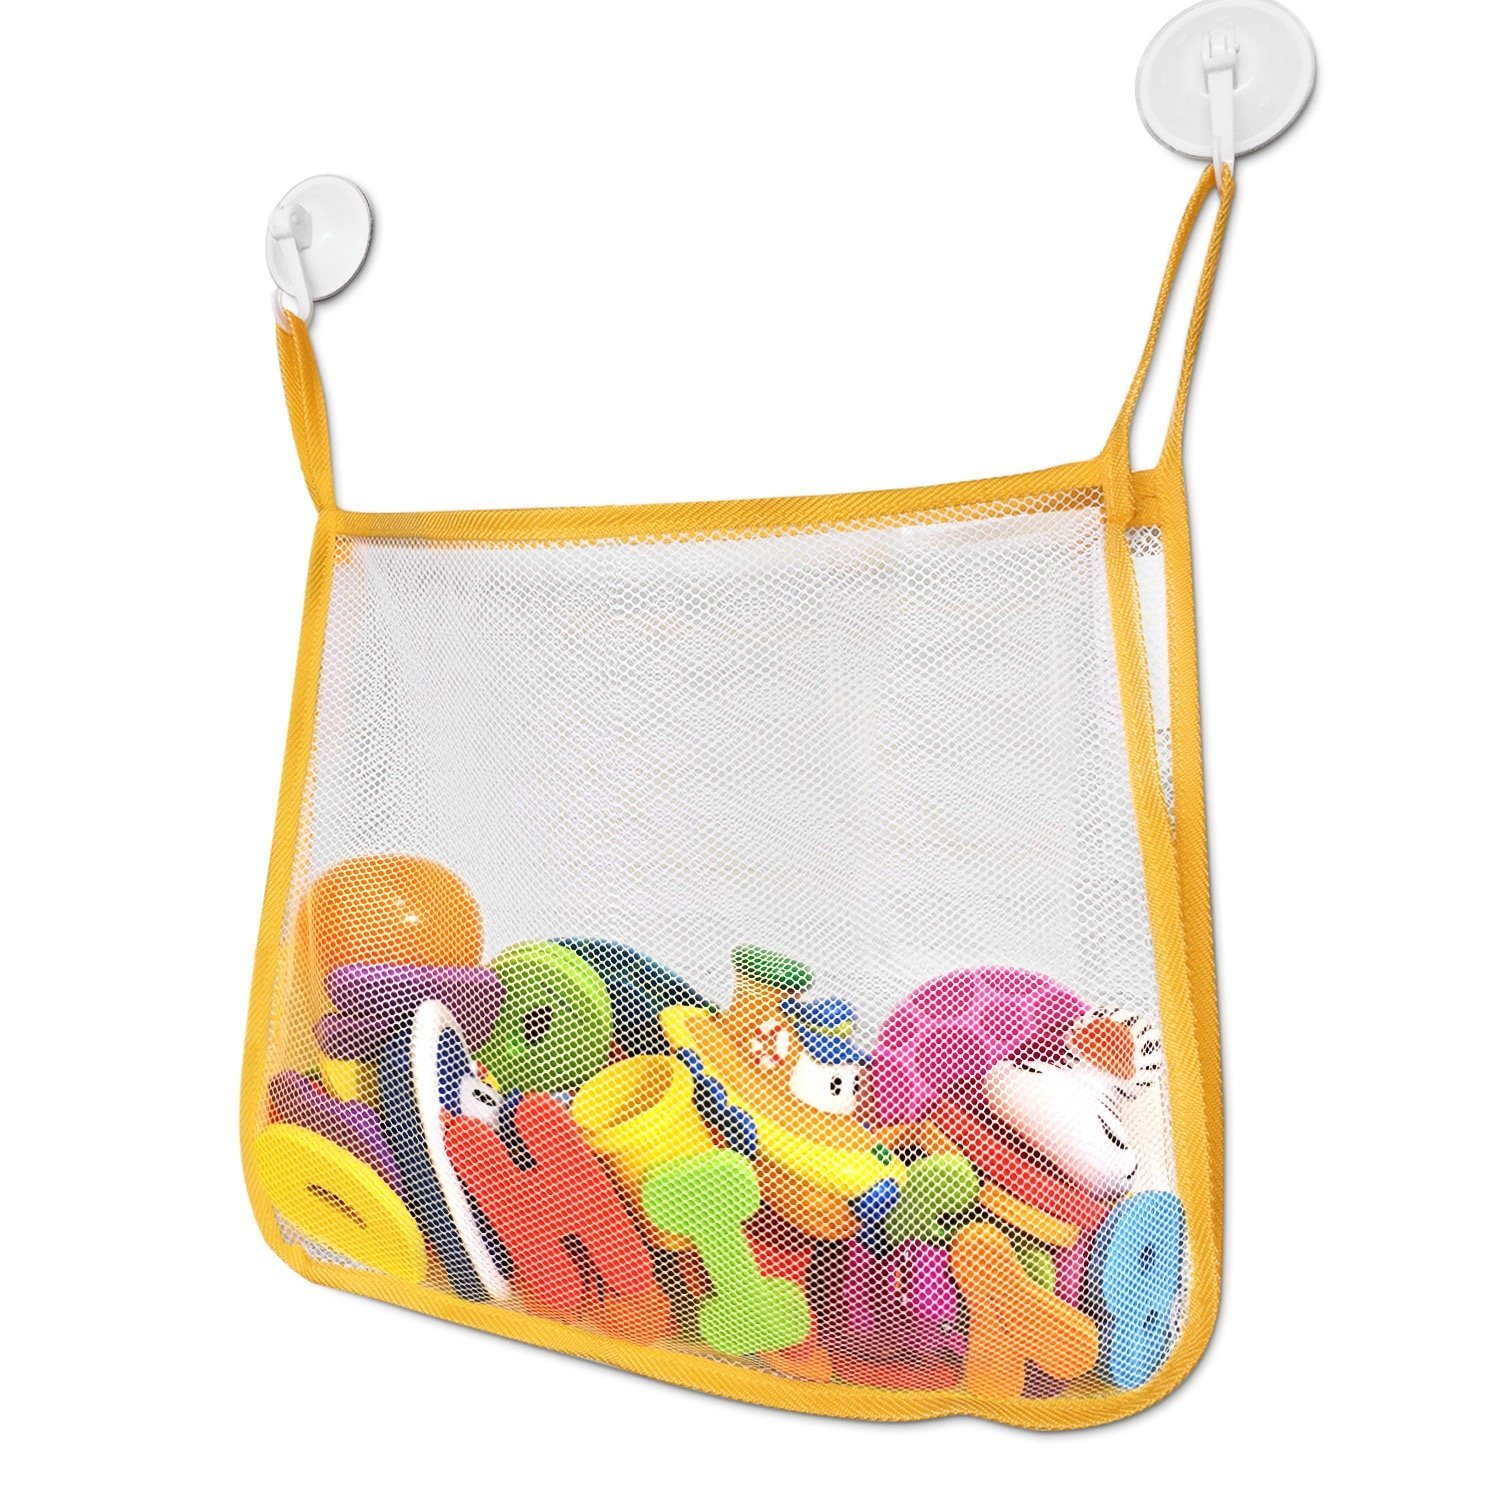 Bath Toy Organizer Set - Large Mesh Bath Toy Net with 2 Strong Suction Cups For Smooth Surfaces - Keep Your Kid's Bath Tub Toys Dry and Off of the Bathtub and Bathroom Floor - Great For Showers